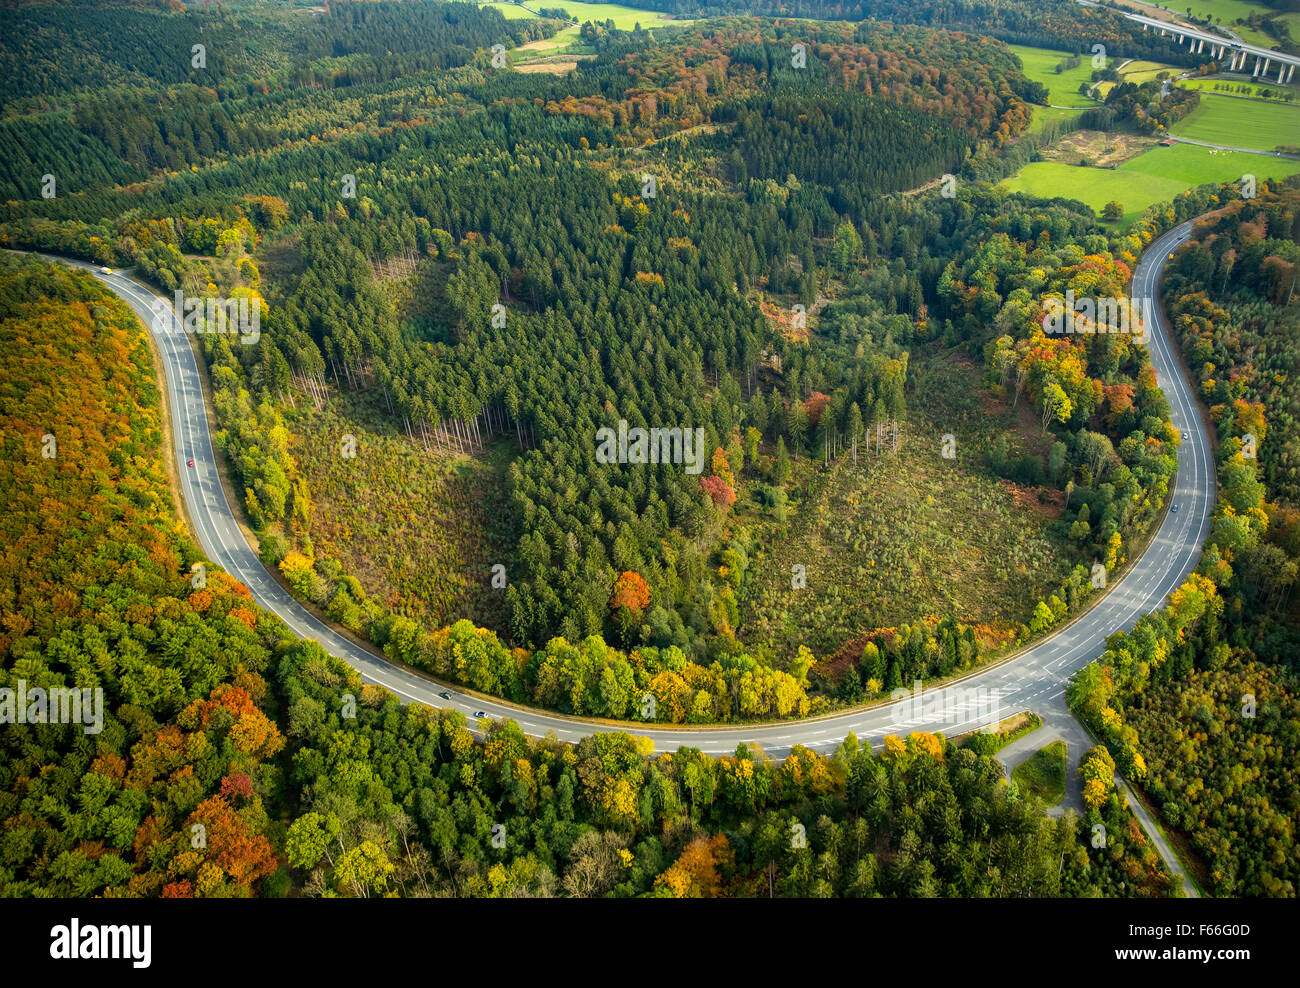 elongated curve in the Arnsberg Forest, Forest in Meschede, fall foliage, autumn forest in bright colors in the - Stock Image